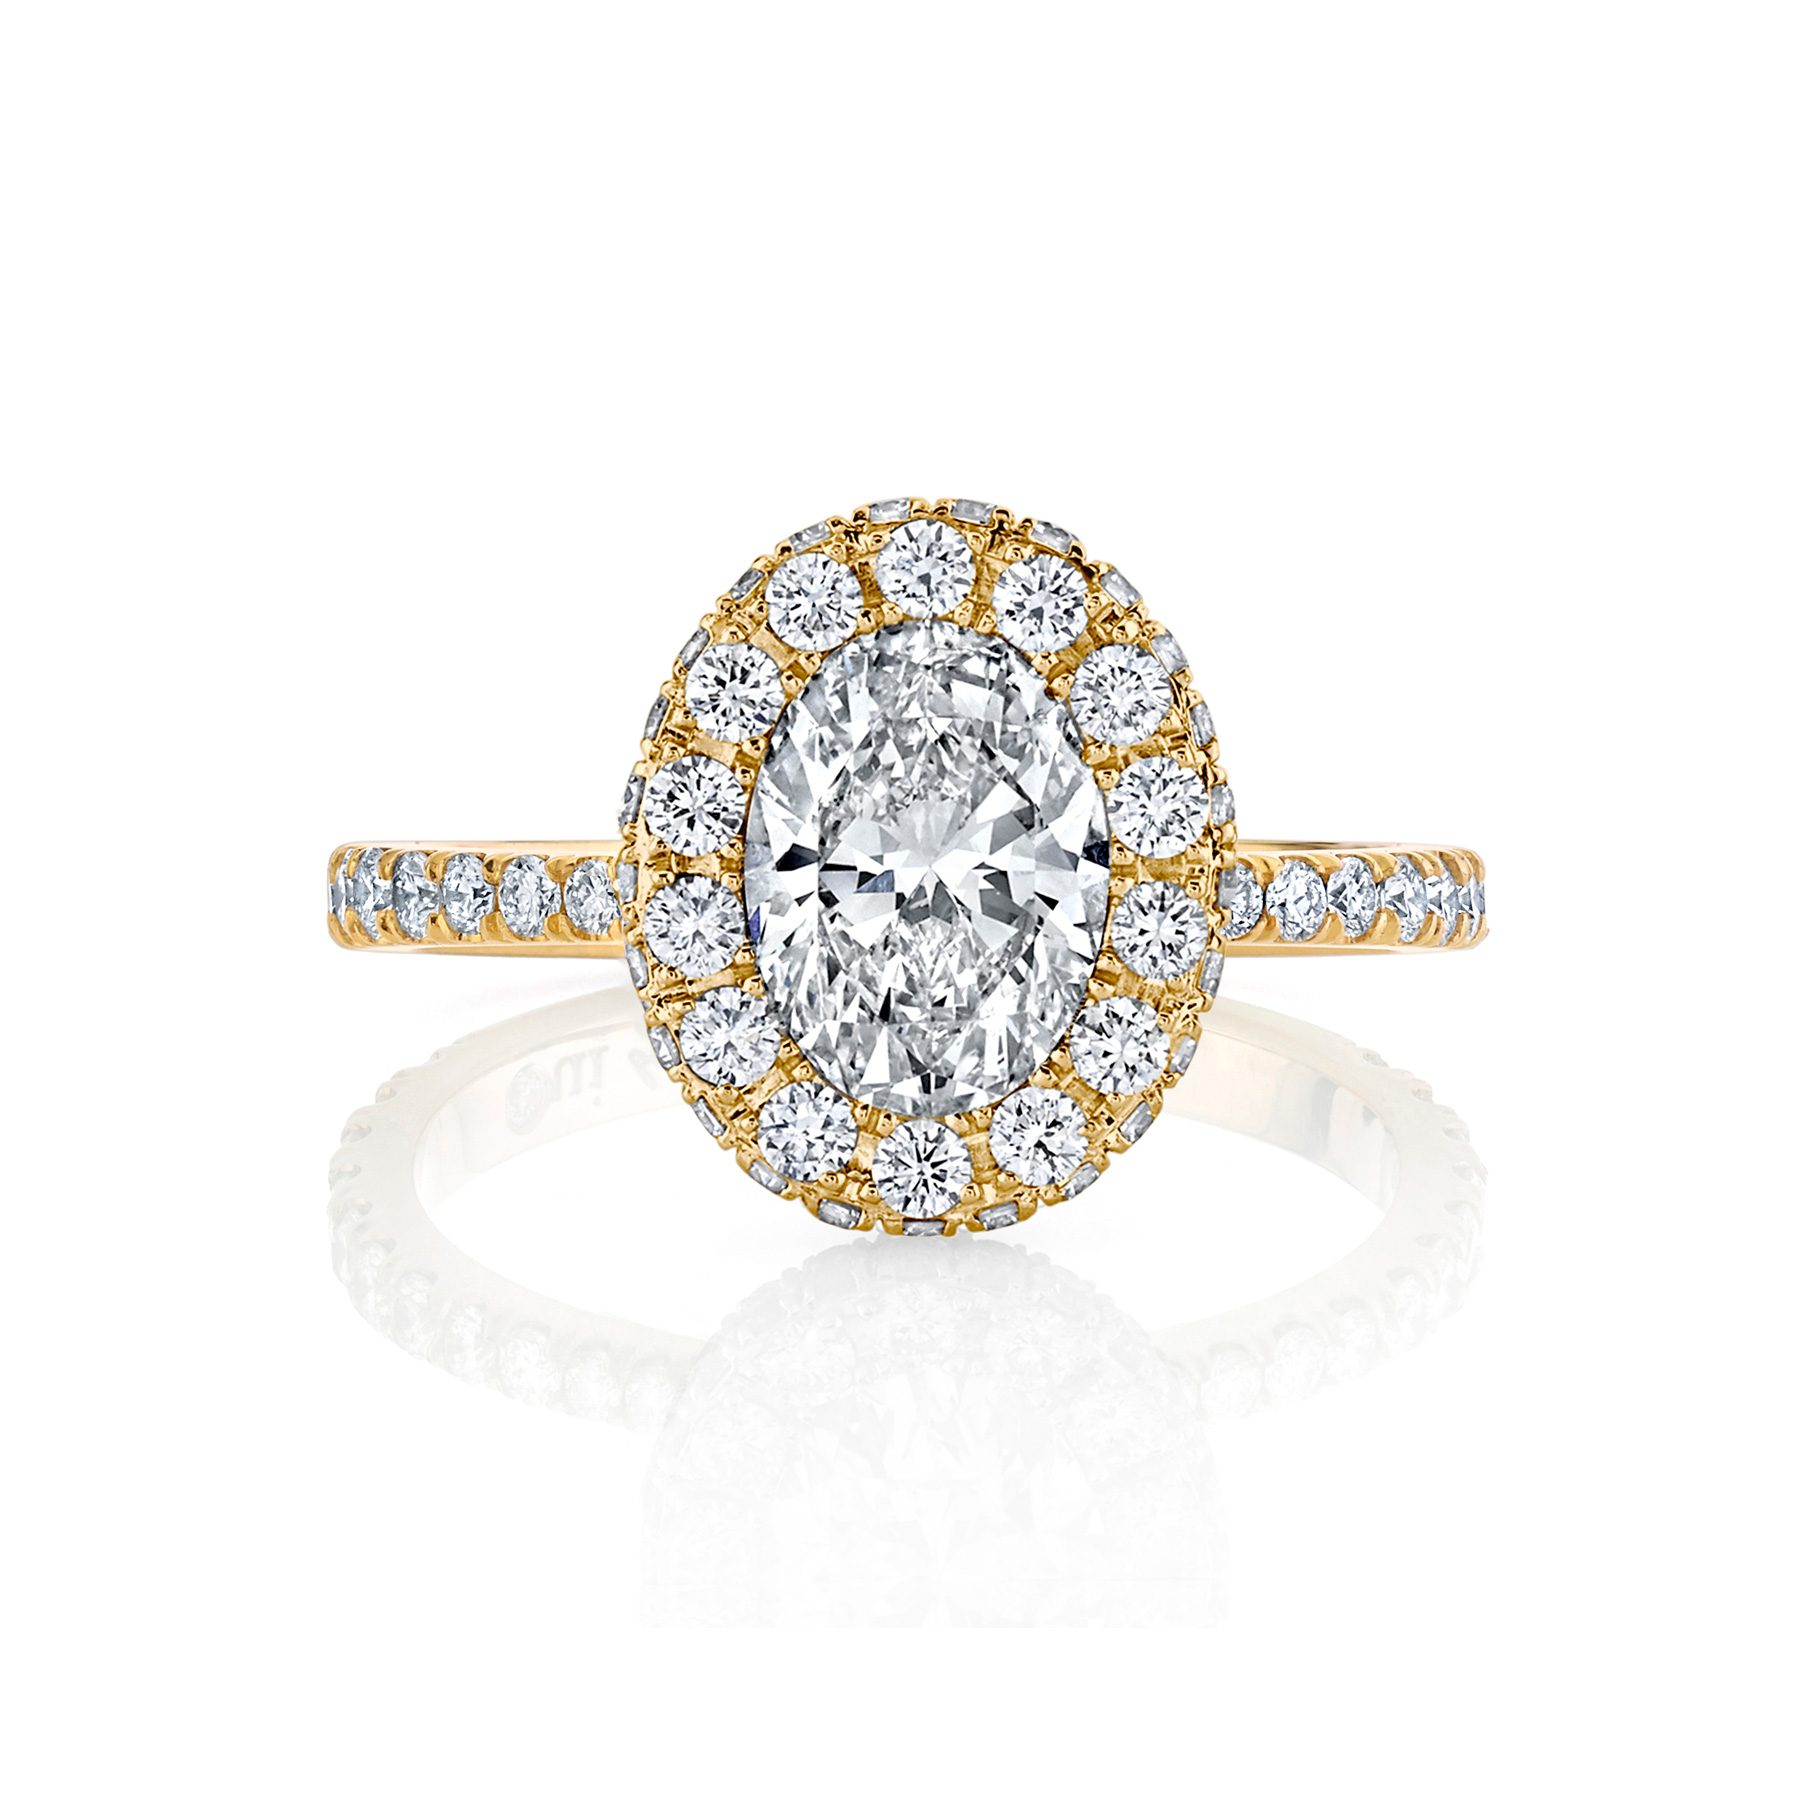 Eloise Oval Seamless Halo® Engagement Ring with diamond pavé in 18k Yellow Gold Front View by Oui by Jean Dousset